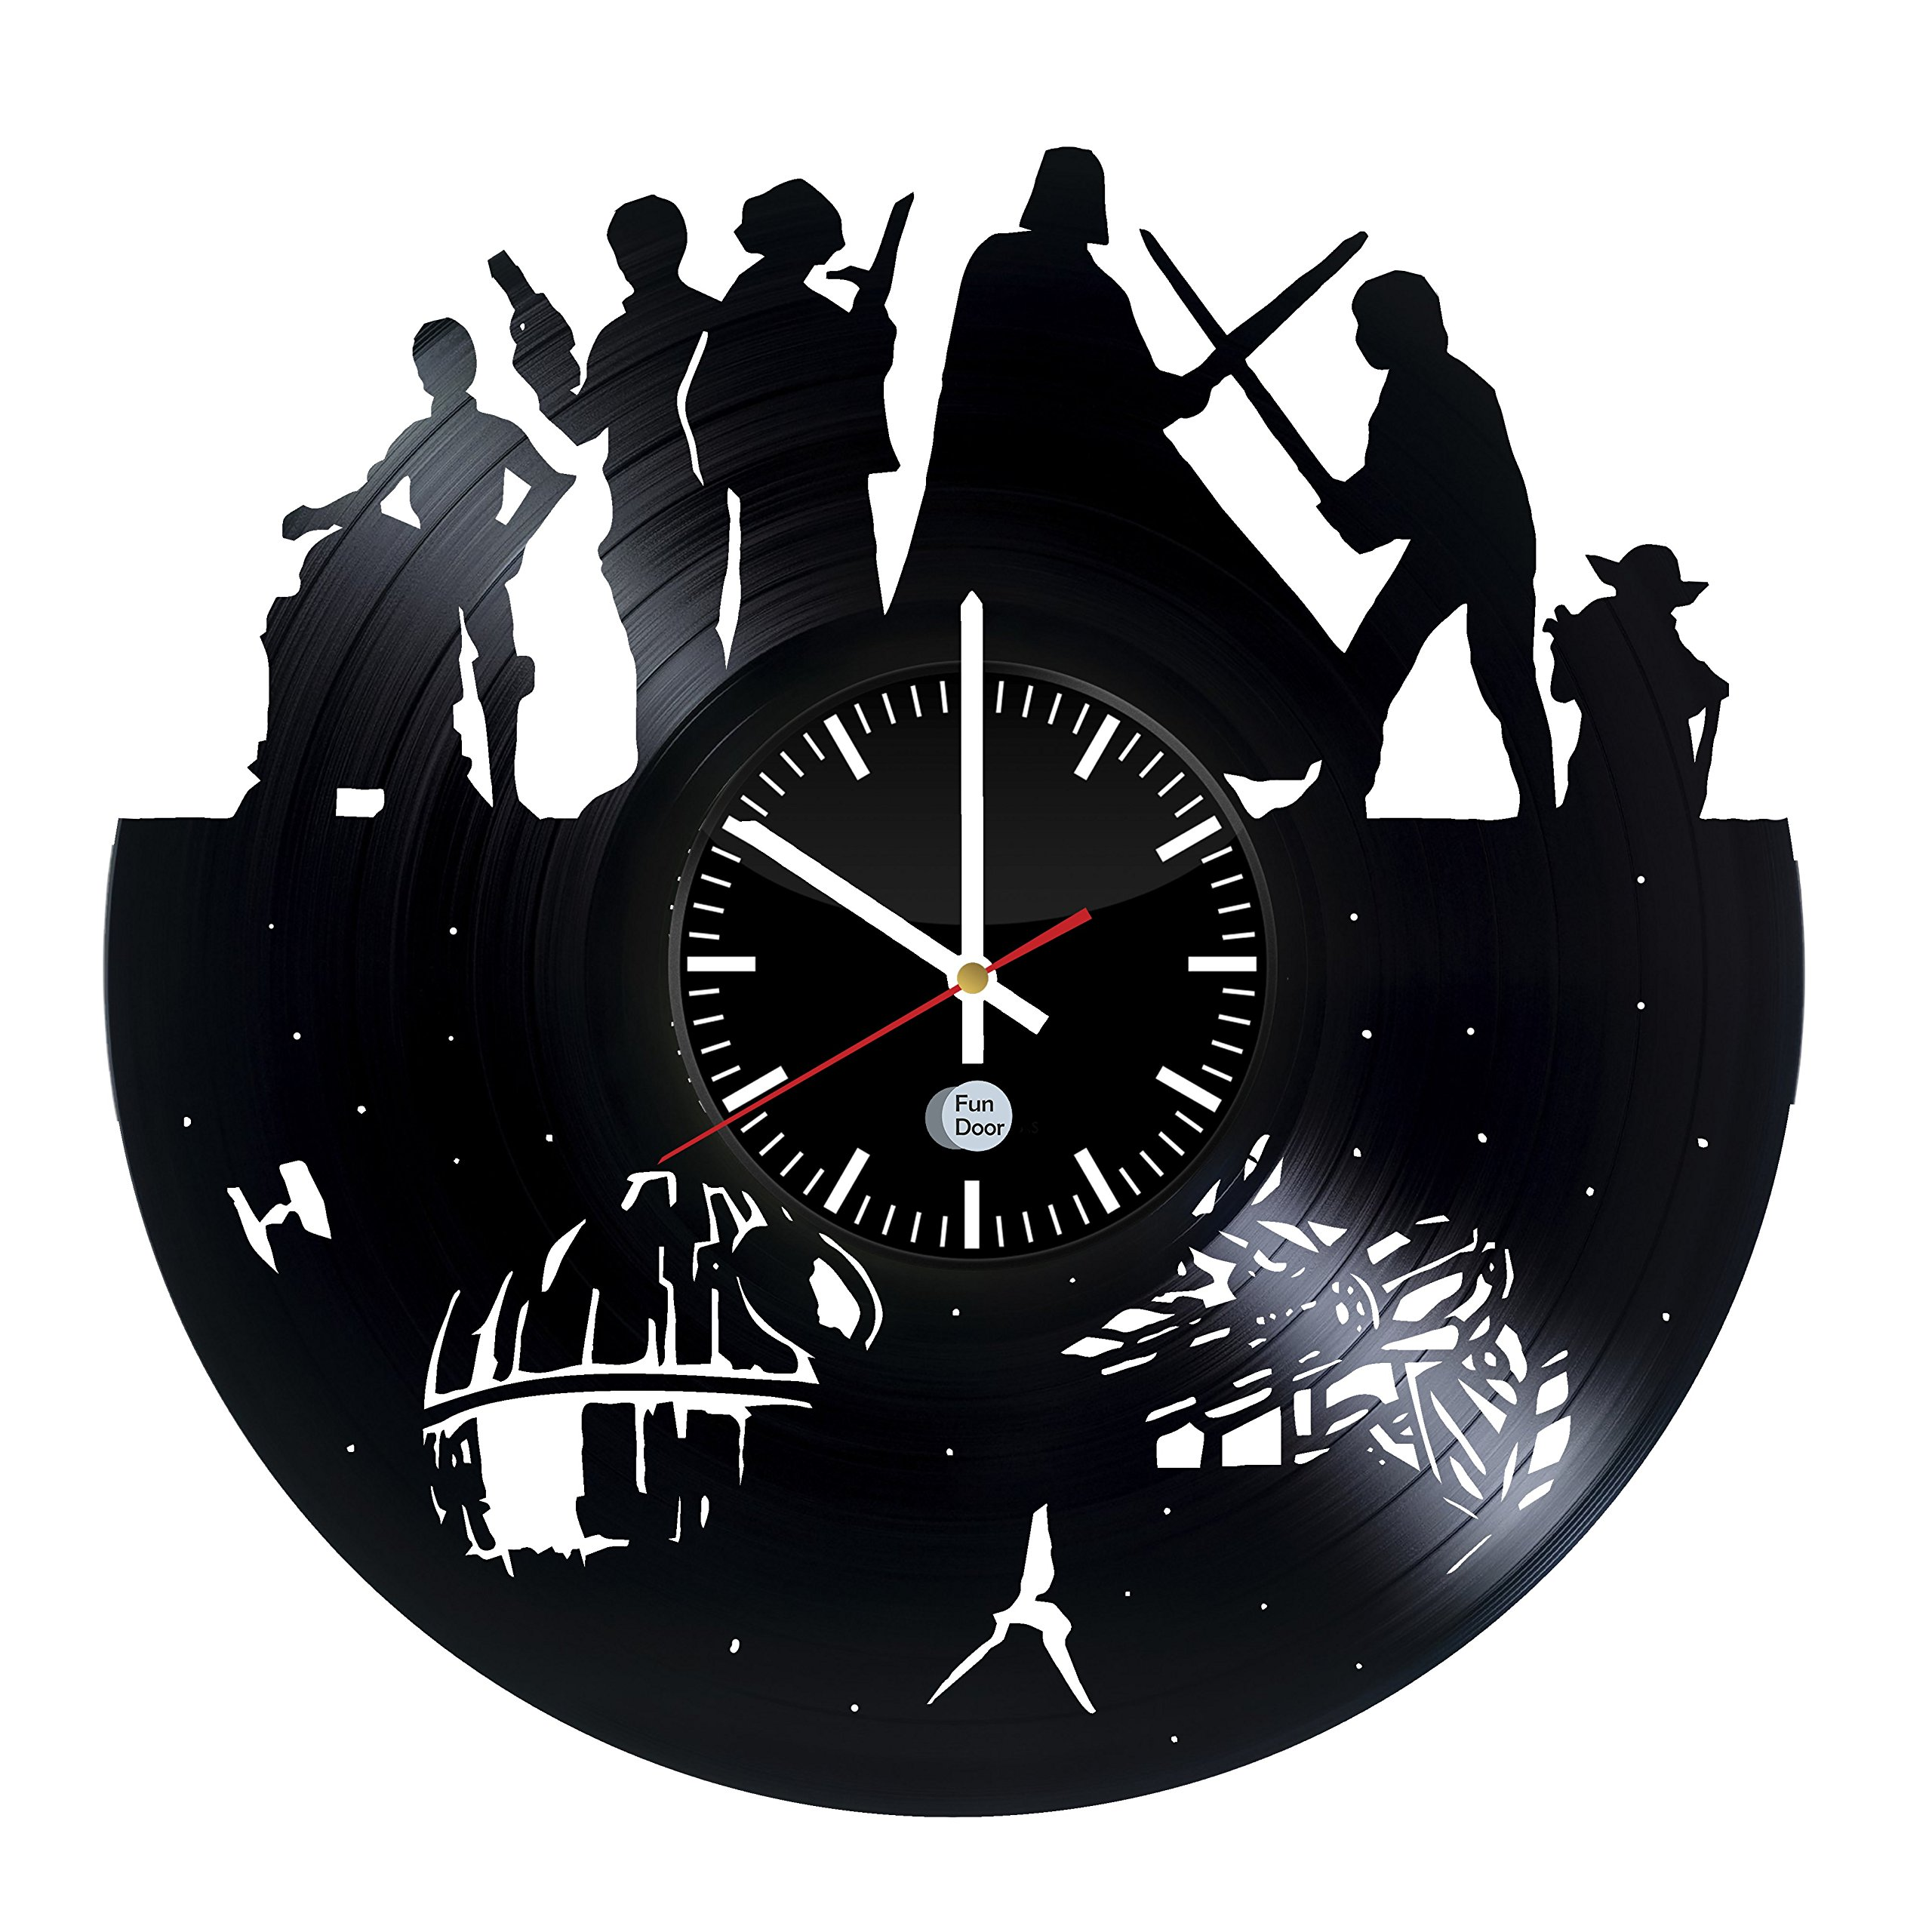 STAR WARS Movie Characters Design handmade vinyl record wall clock - Best gift